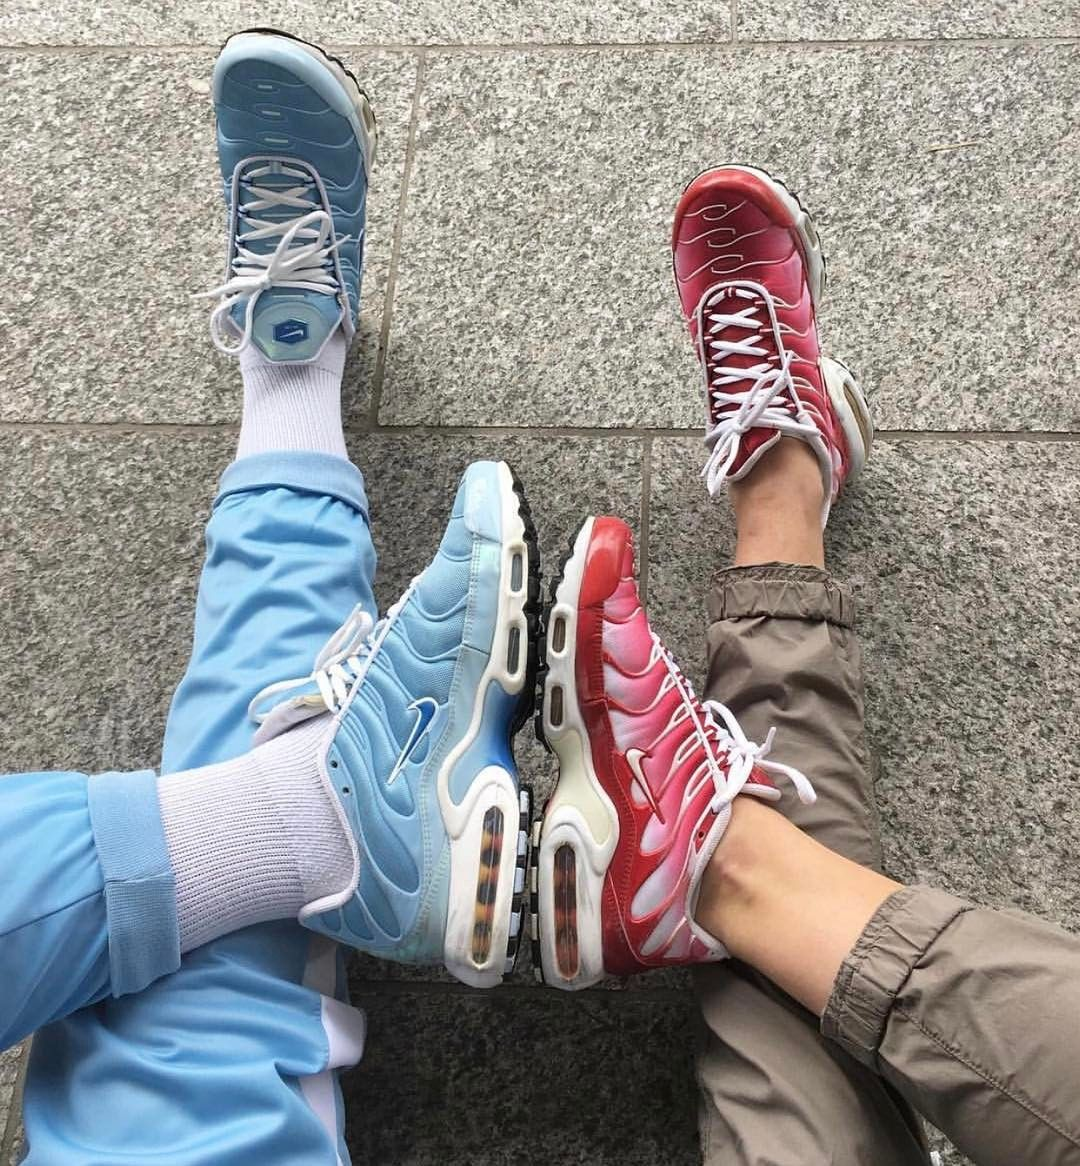 Mi Piace 2 984 Commenti 24 The Baesment Baesmentapproved Su Instagram Brandazzy Viewmore Baesmentapprov Couple Shoes Sneakers Womens Sneakers